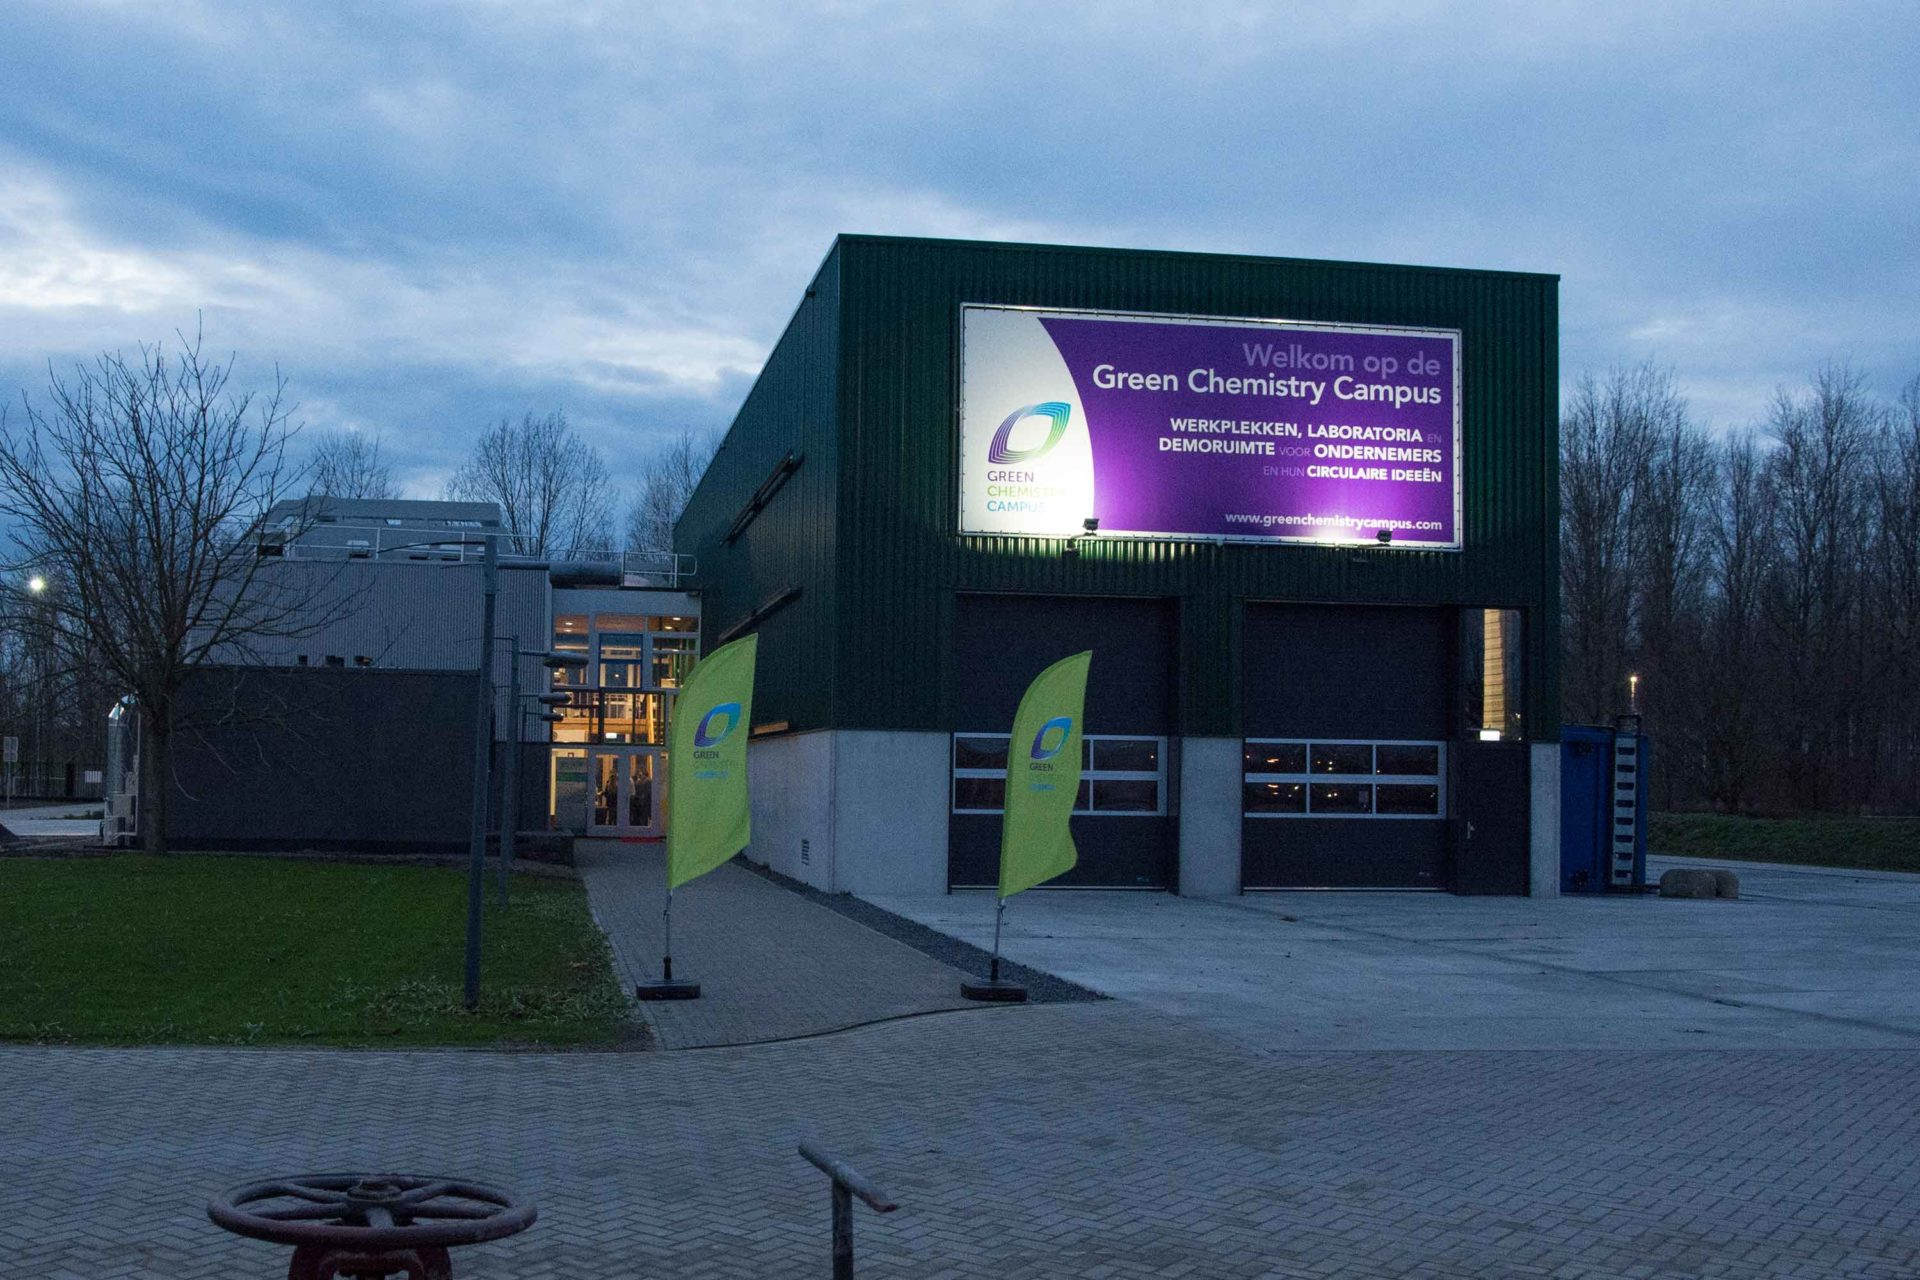 Demo facility Green Chemistry Campus officieel geopend